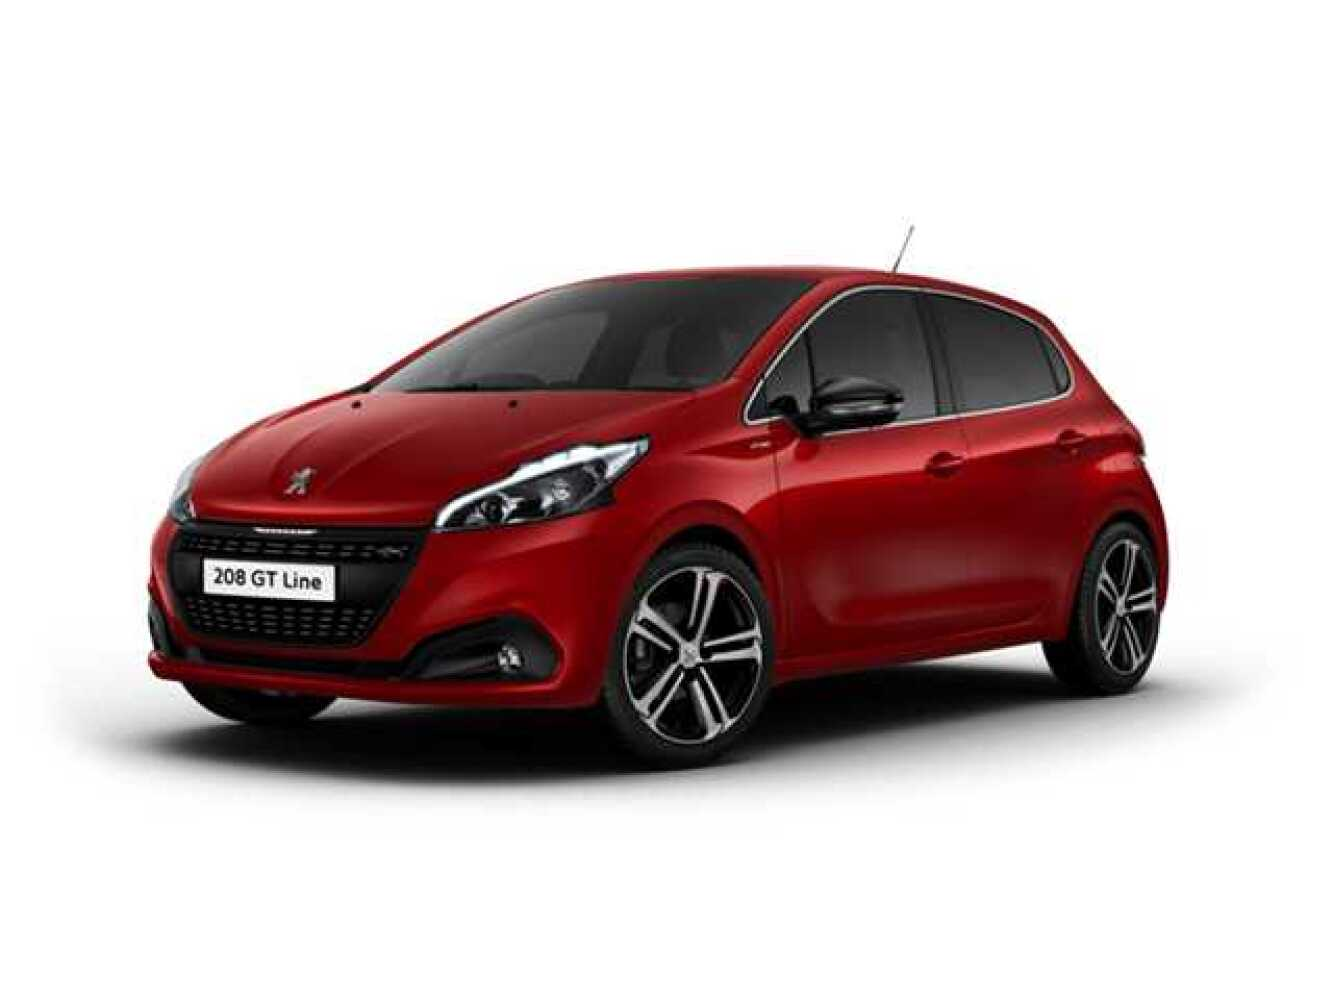 New Peugeot 208 Deals New Peugeot 208 1 2 Puretech 110 Gt Line 5dr 6 Speed